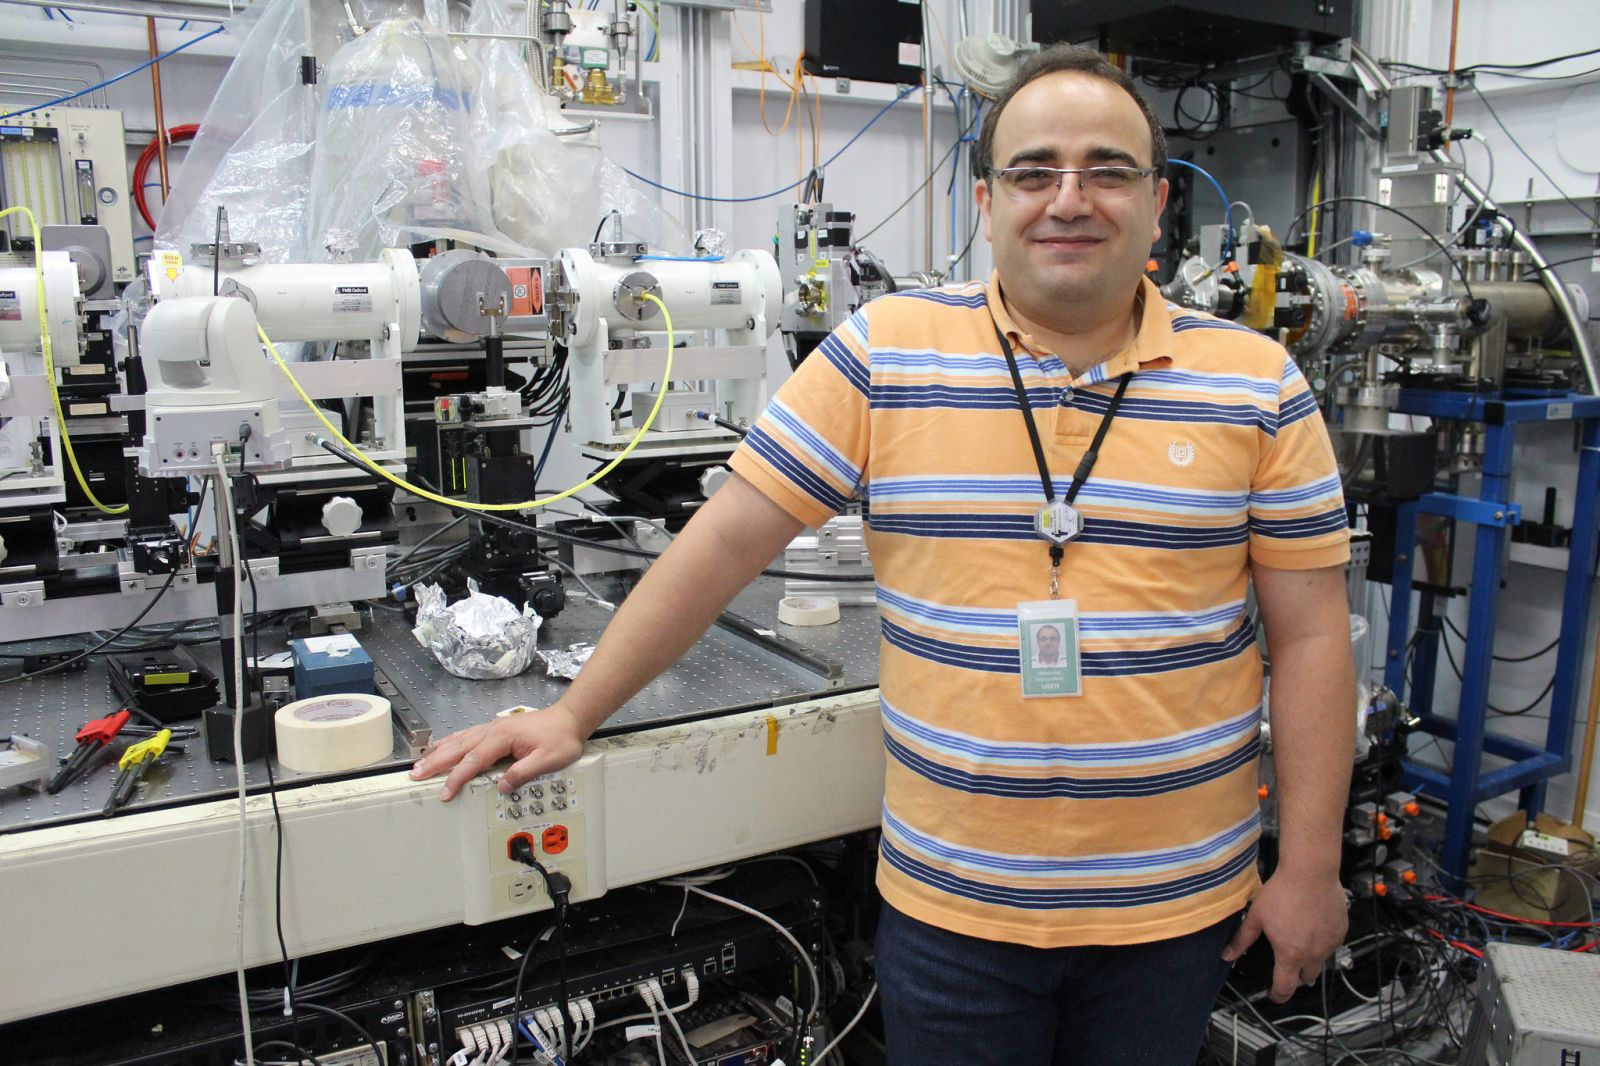 Mohammad Banis at a Canadian Light Source beamline where he studies batteries. Photo by Lana Haight